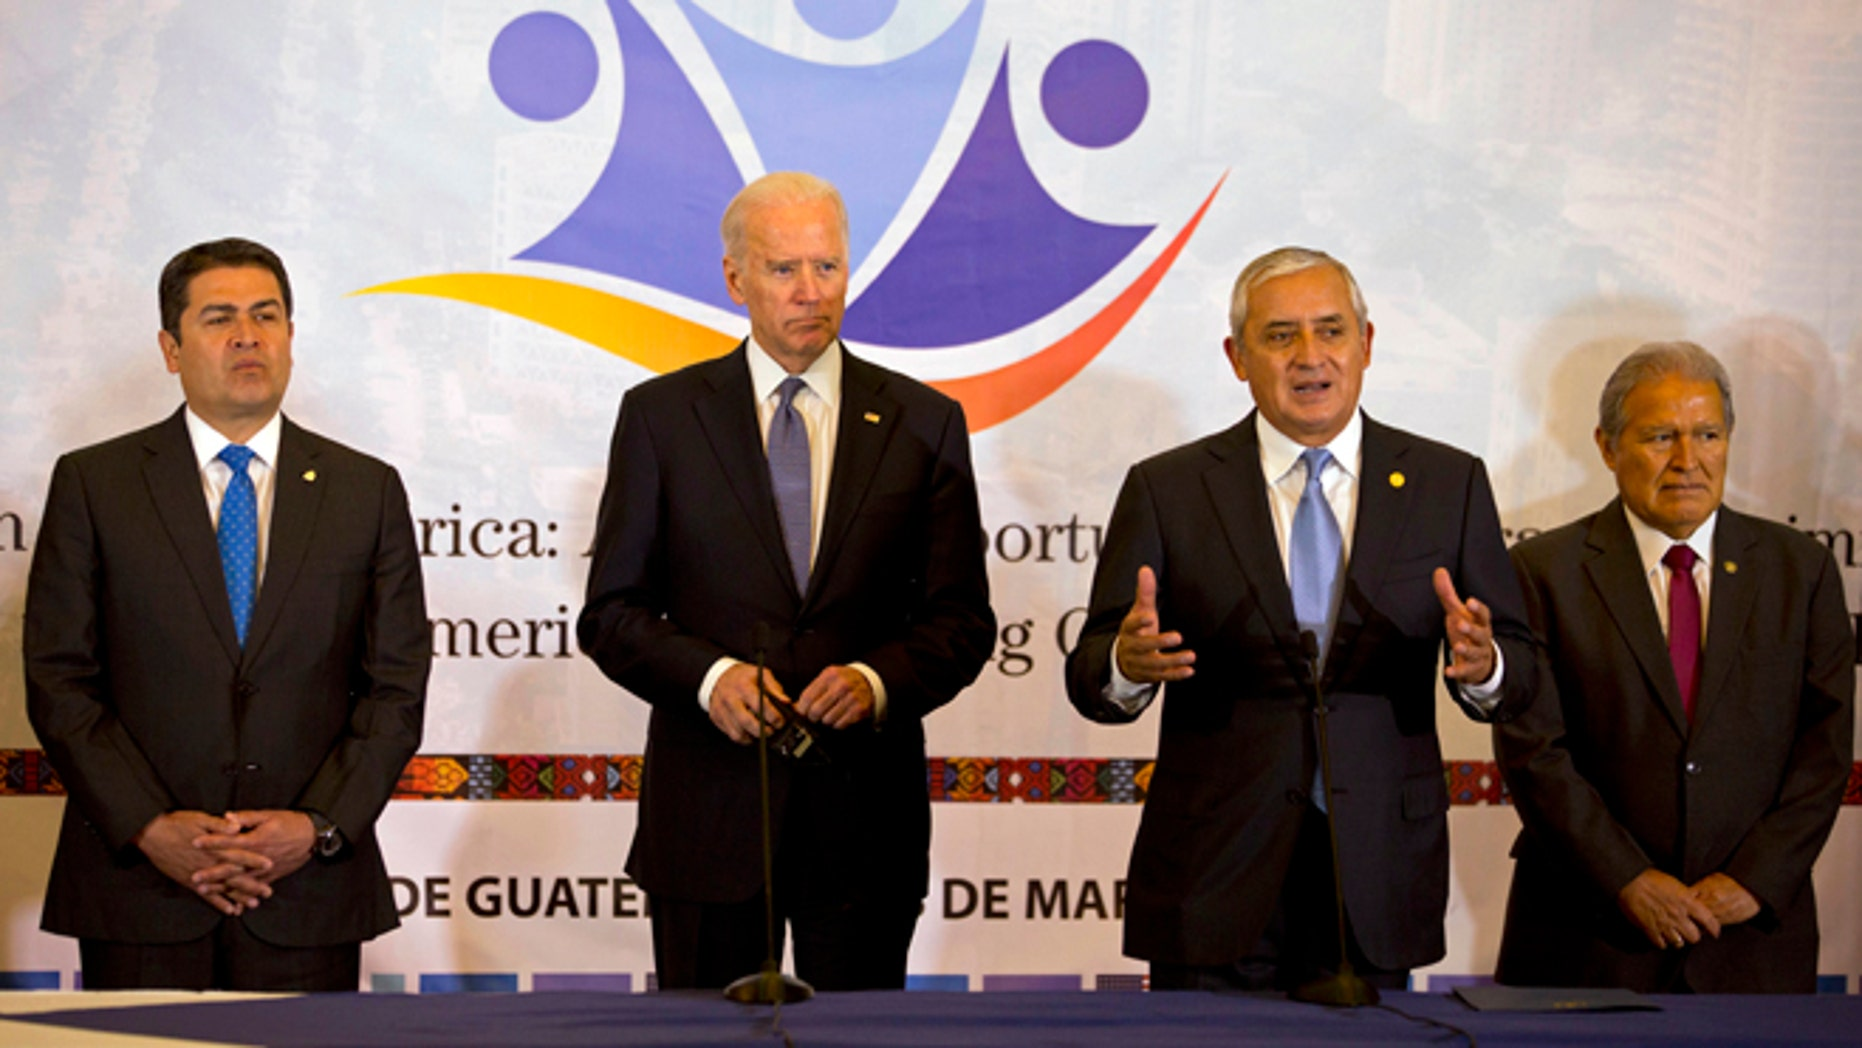 Honduras' President Juan Orlando Hernandez, left, U.S. Vice President Joe Biden, second left, and El Salvador's President Salvador Sanchez, right, stand as Guatemala's President Otto Perez Molina, second from right, talks during a working session in Guatemala City, Tuesday, March 3, 2015. Biden has arrived in Guatemala for a two-day visit with Central American presidents to discuss funding priorities aimed at slowing migration. (AP Photo/Moises Castillo)